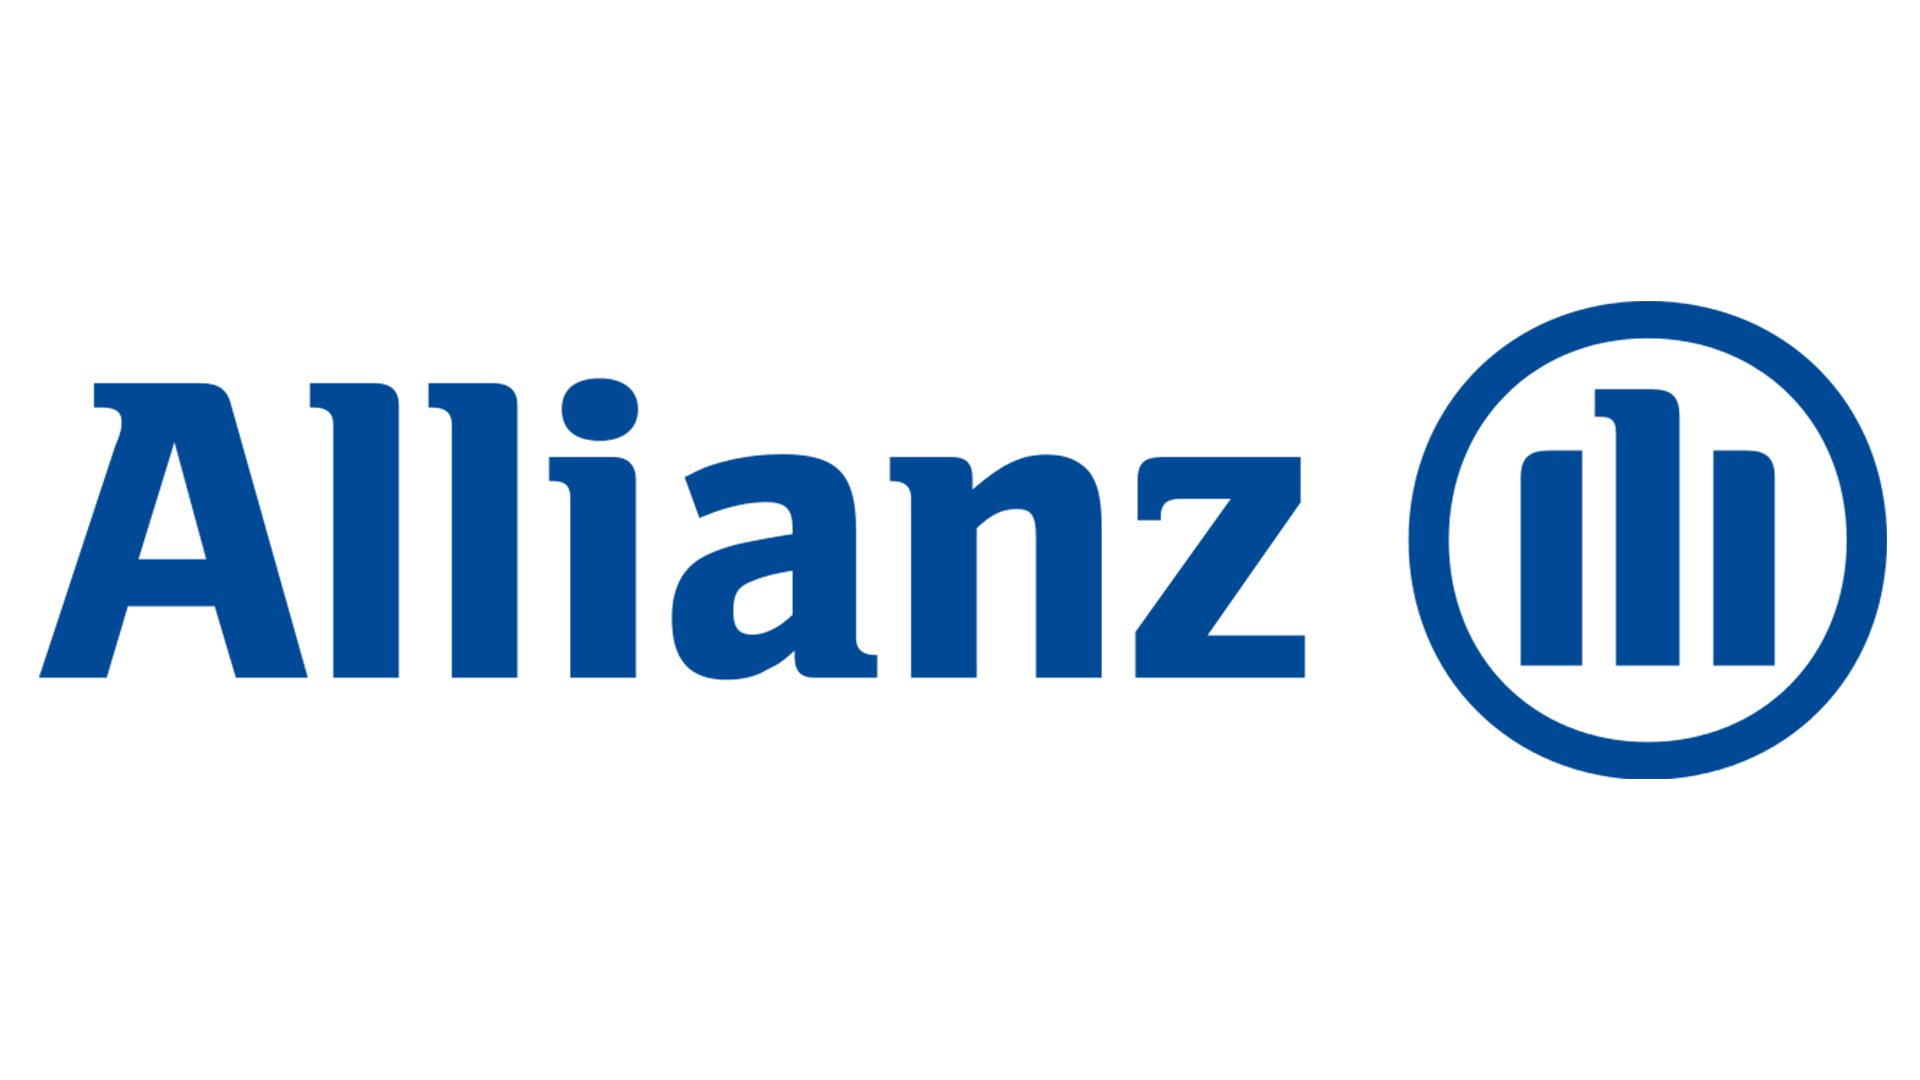 Allianz mutuelle